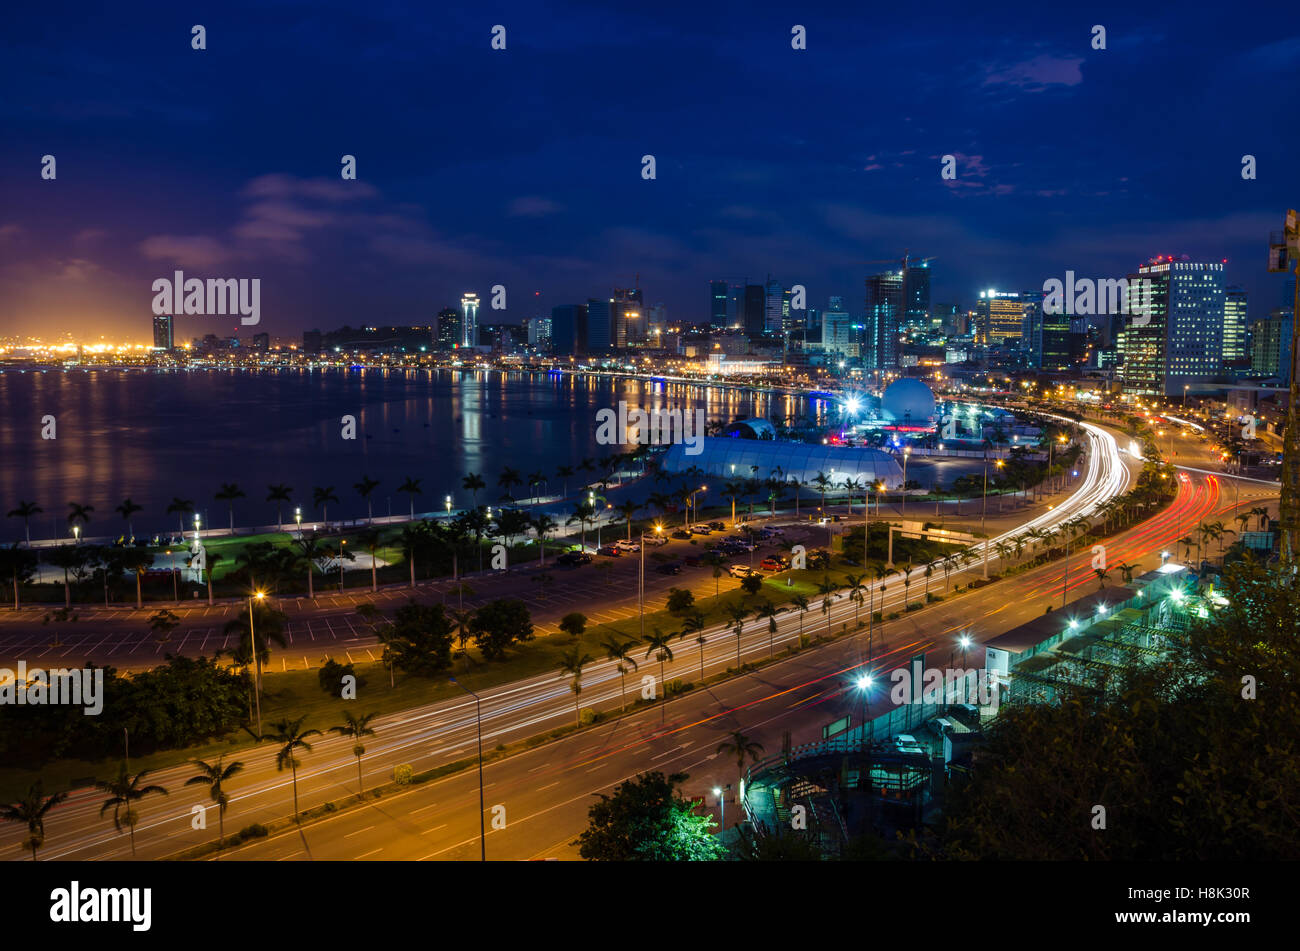 Skyline of Luanda and its seaside during the blue hour. Many lights and high rise buildings. - Stock Image